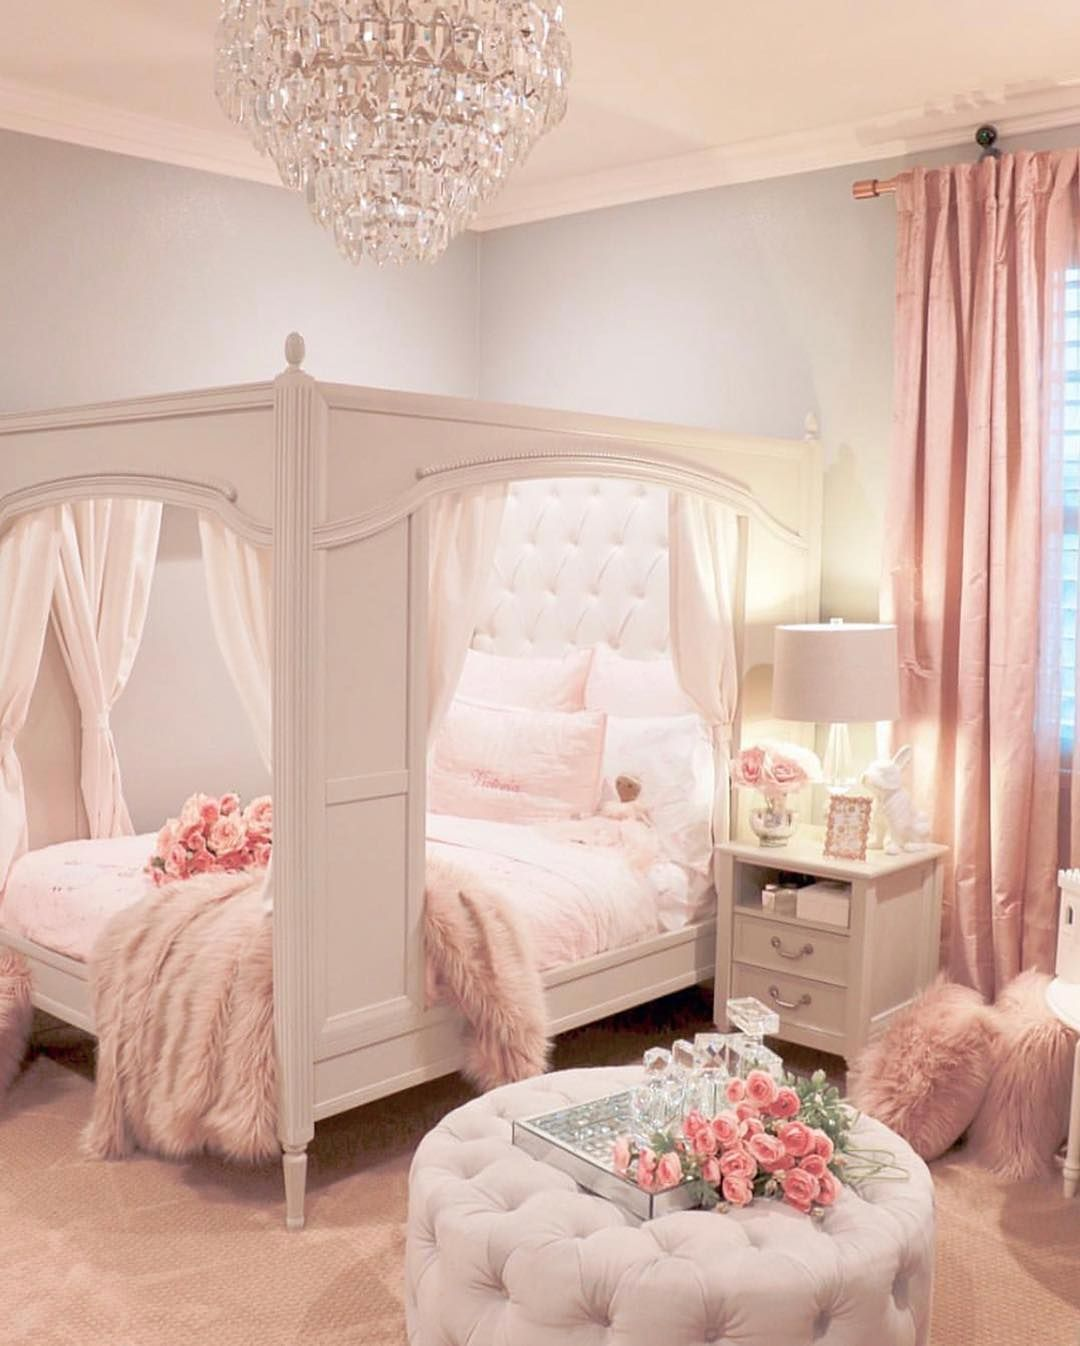 Jaw Dropping Gorgeous The Details Are Fabulous Swipe And Enjoy Credit To Rh Interior Designs Cute Bedroom Ideas Girl Bedroom Decor Room Inspiration Bedroom design ideas app